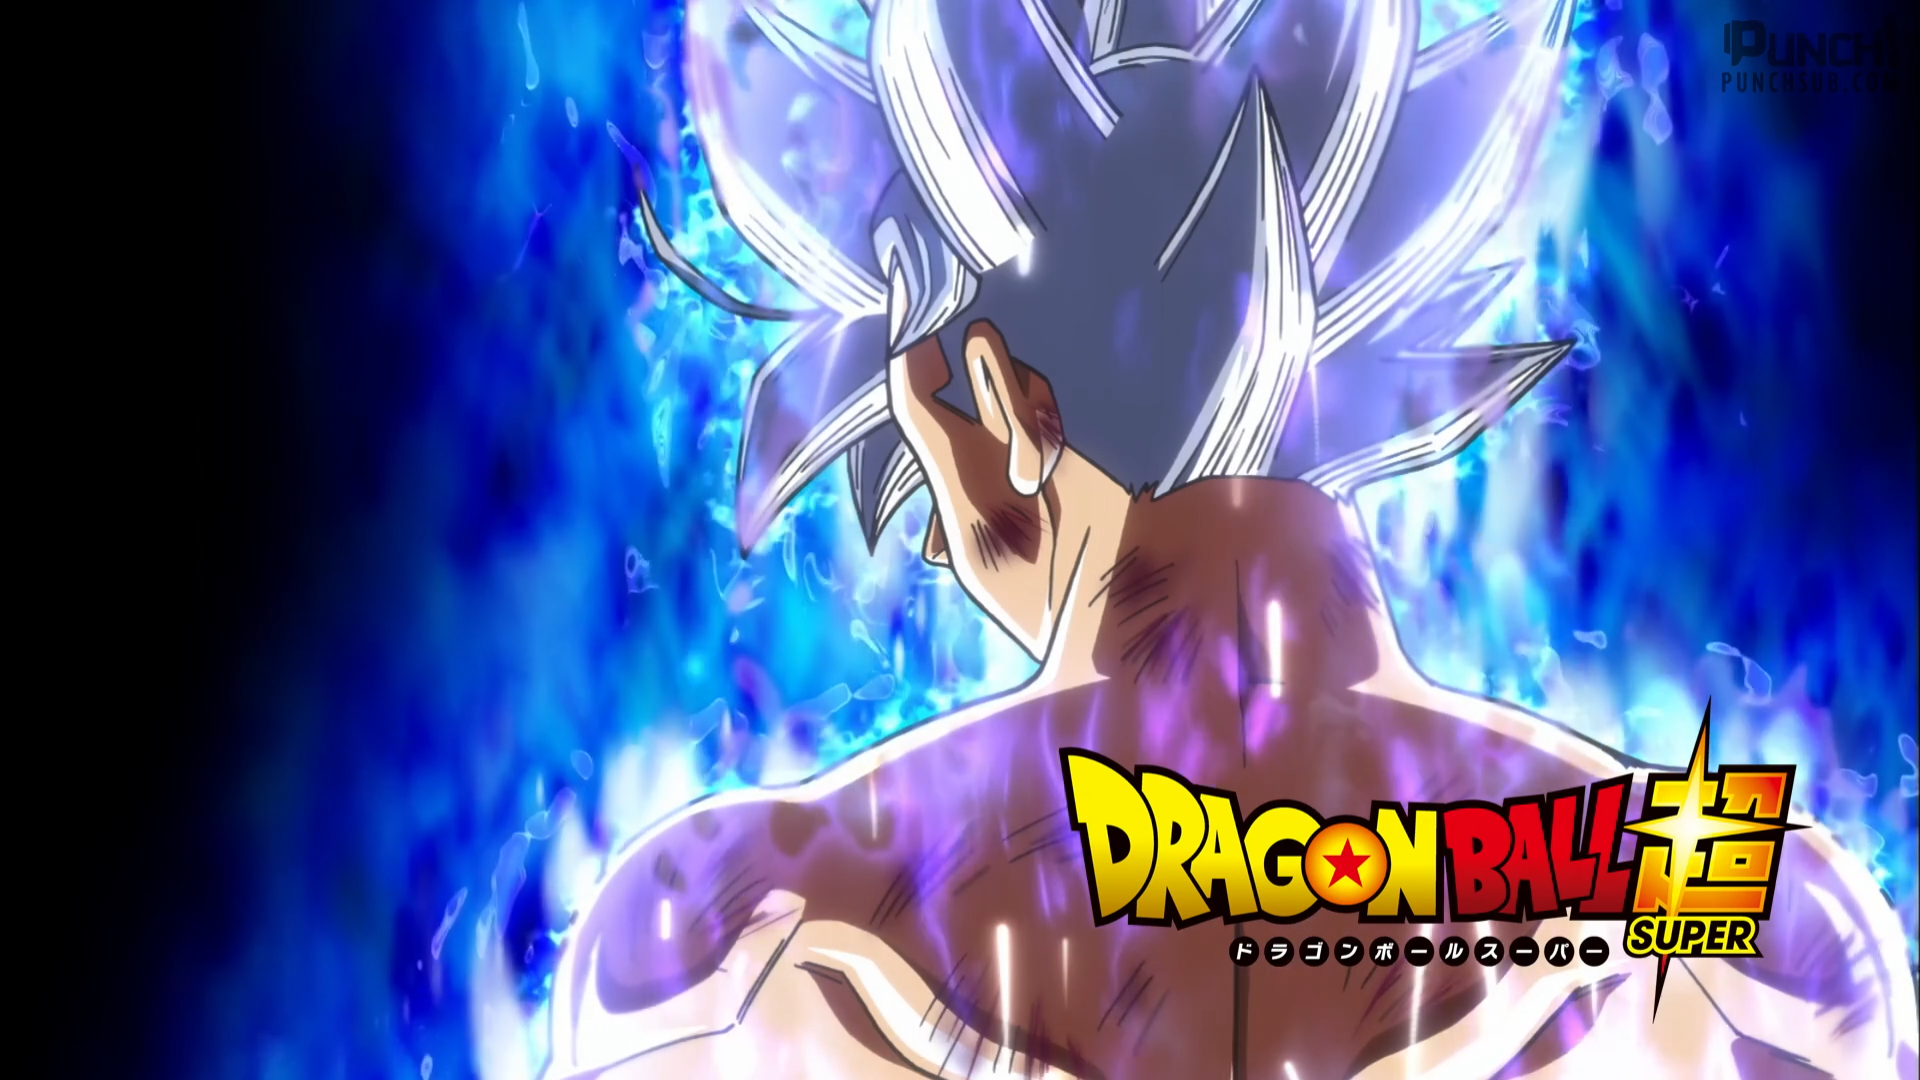 Mastered Ultra Instinct Goku Wallpapers Top Free Mastered Ultra